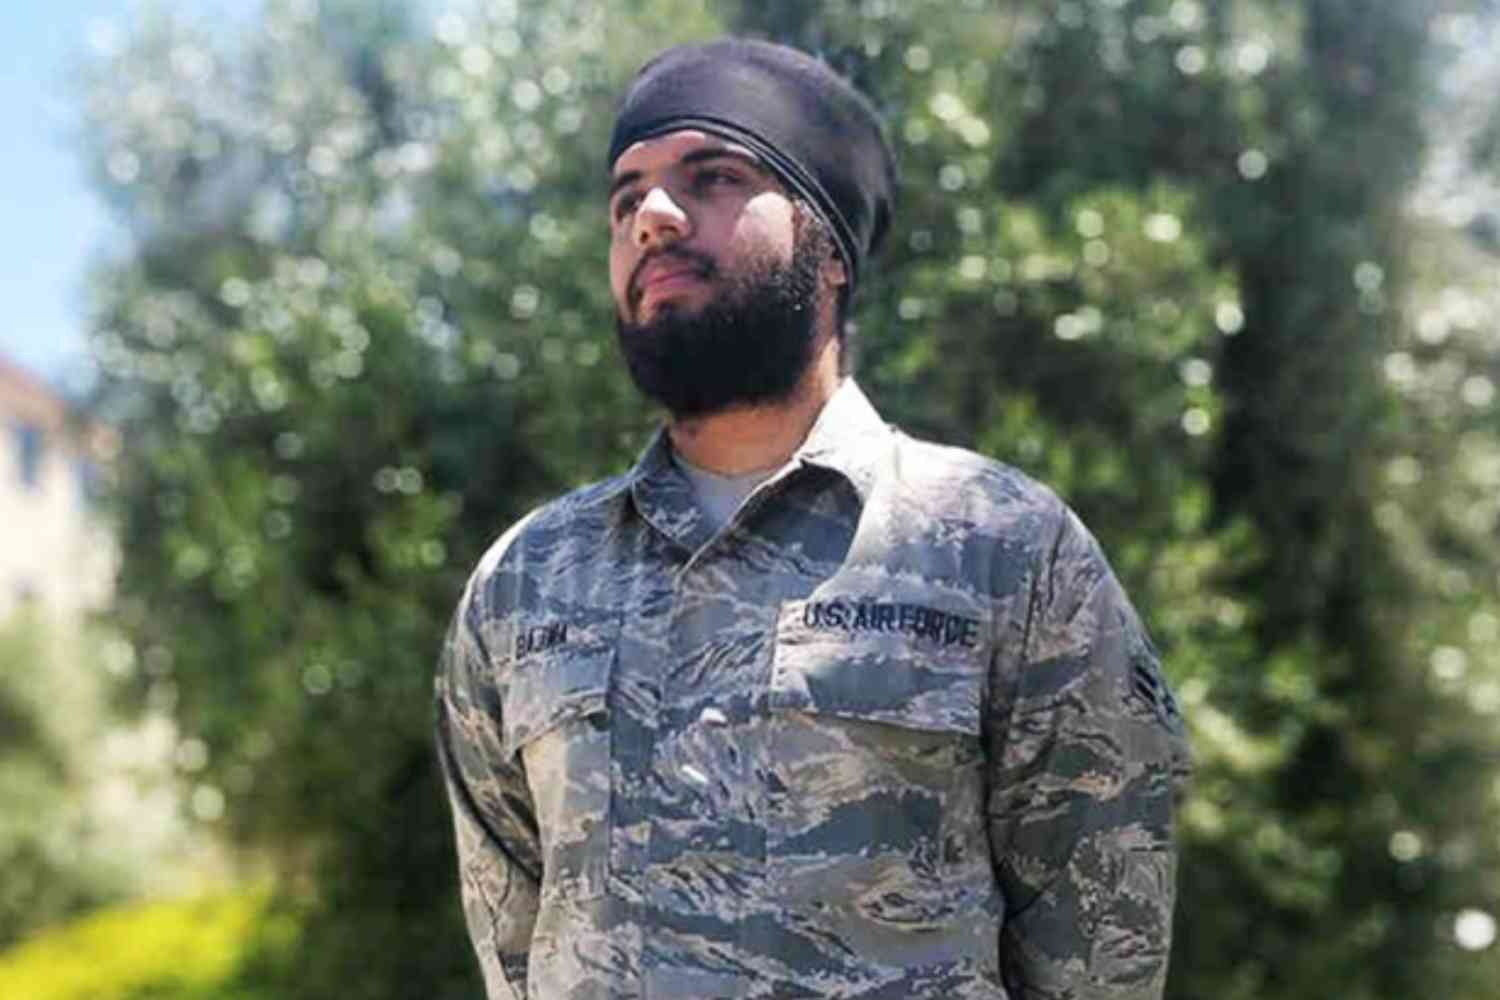 U.S. Air Force updates dress code to allow beards, turbans, hijabs for religious reasons